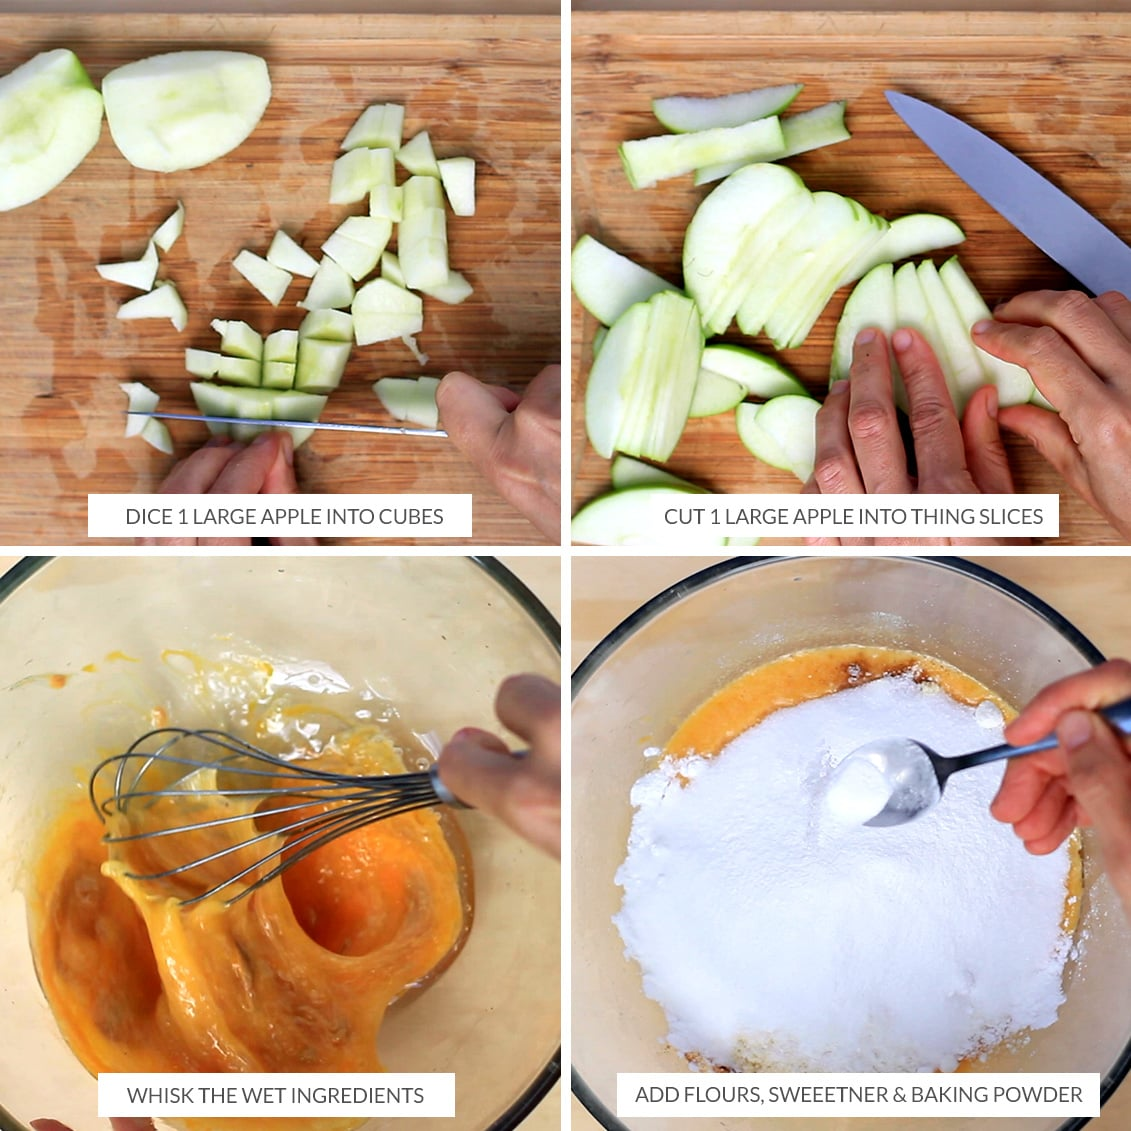 How to prepare apples and batter for the baked apple slice